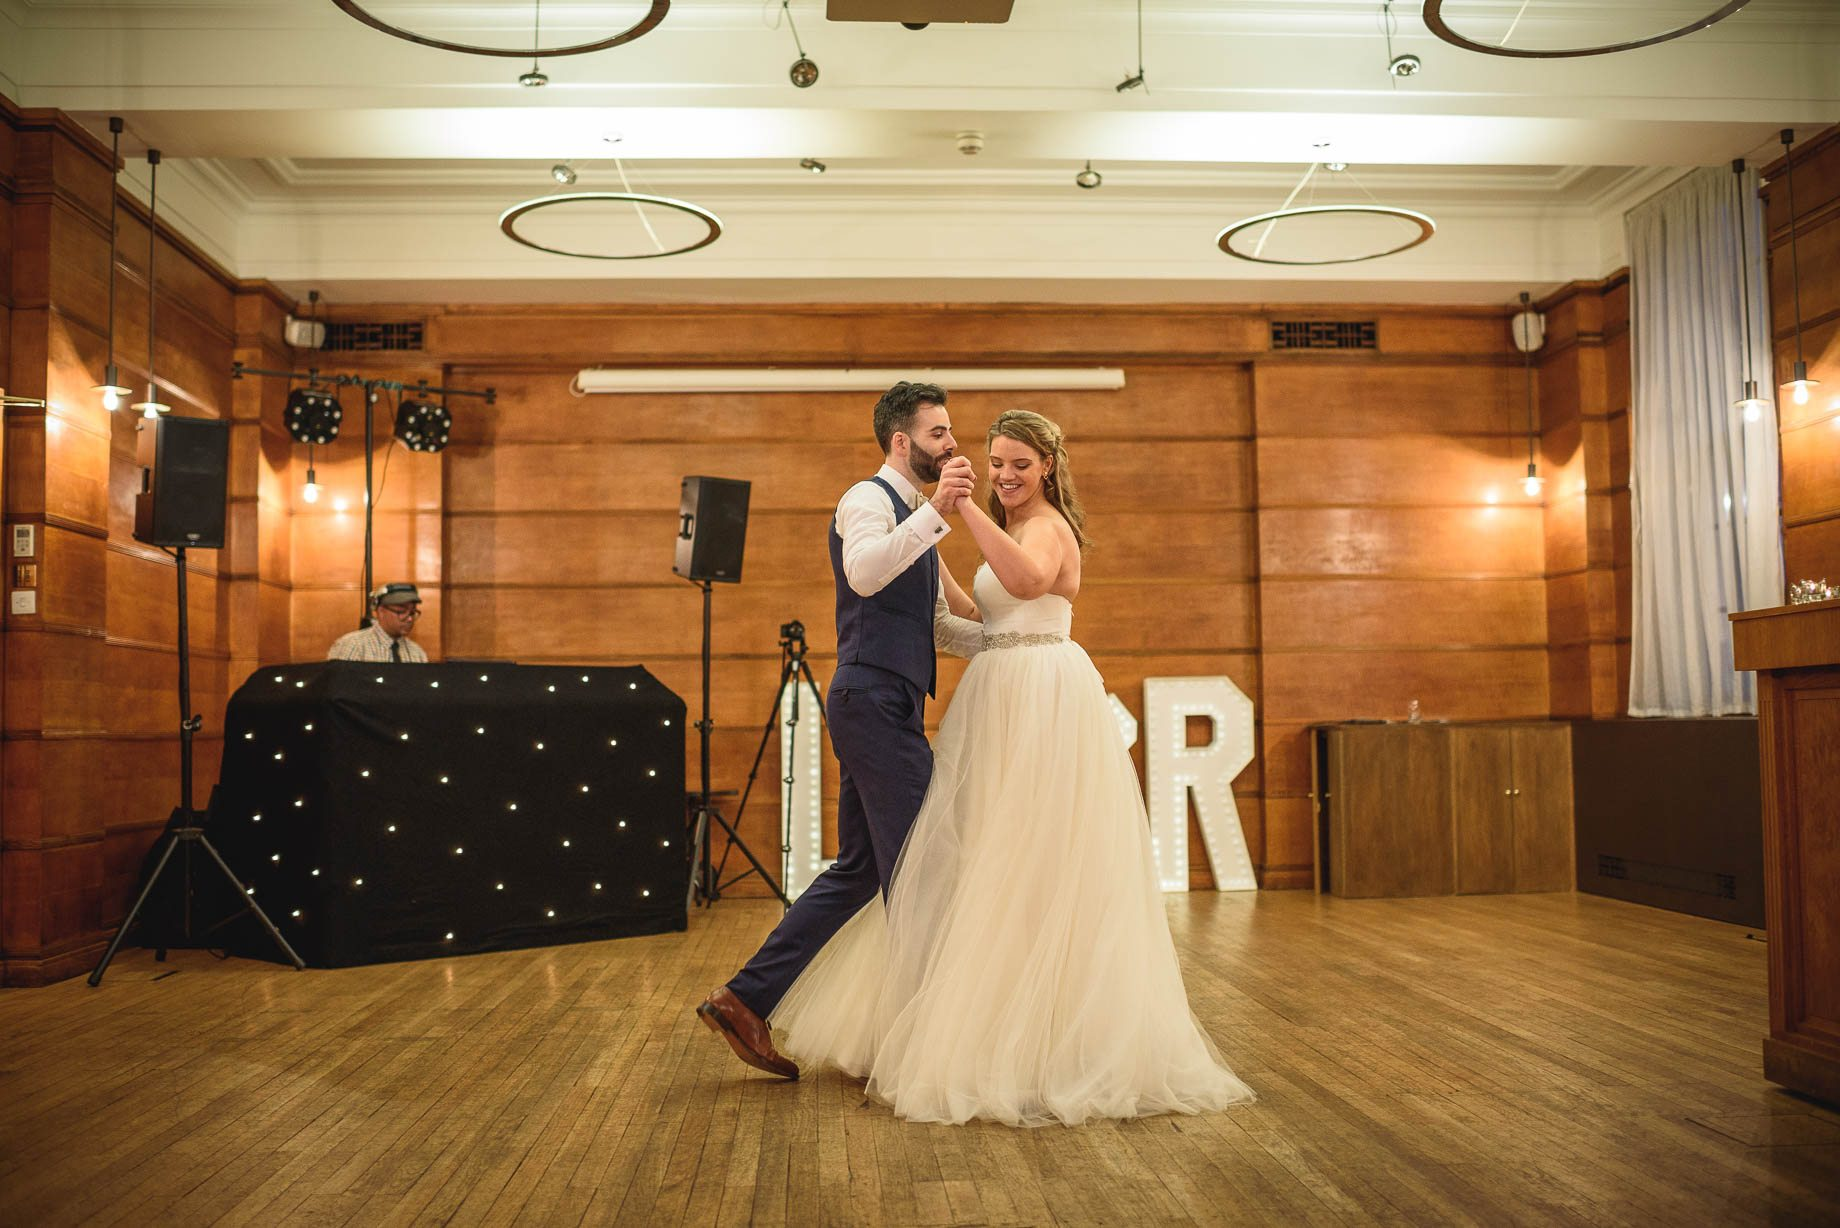 London Wedding Photography - Guy Collier Photography - LJ + Russell (150 of 155)